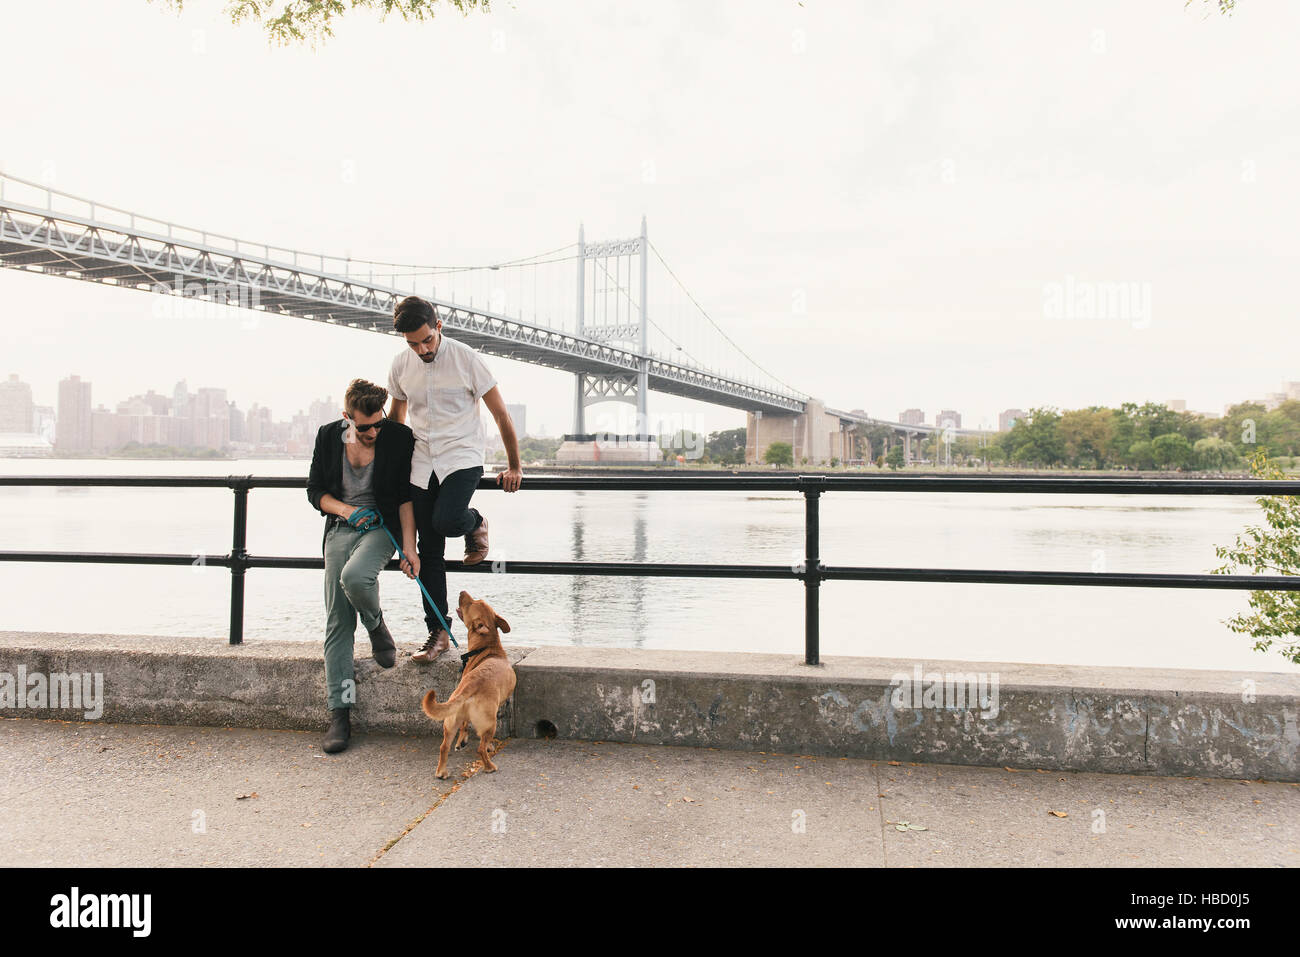 Young male couple on riverside looking at dog, Astoria, New York, USA - Stock Image